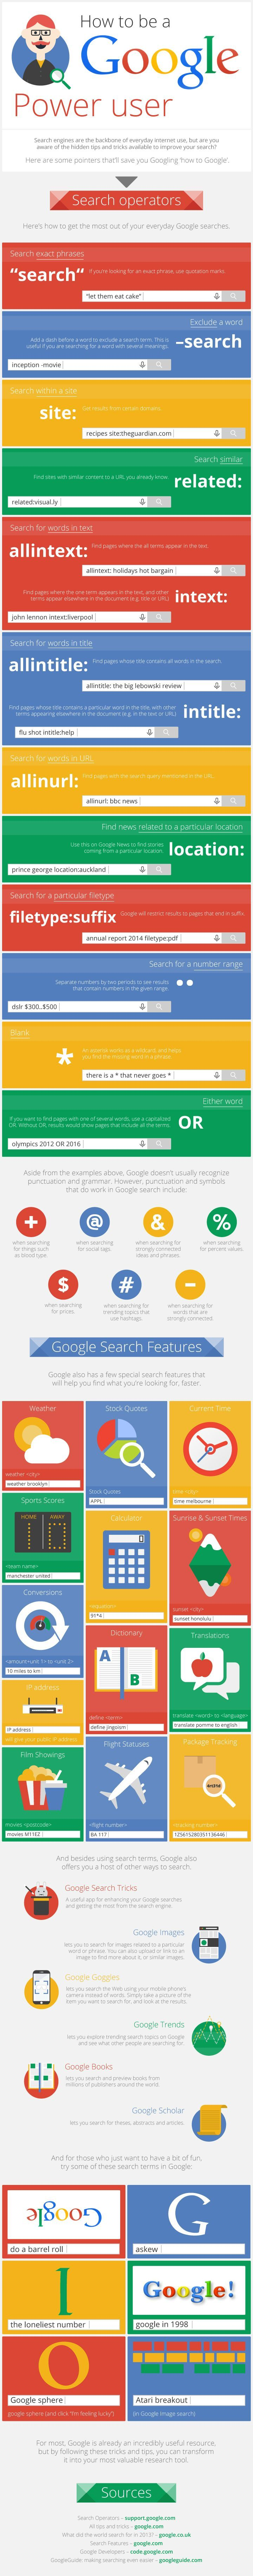 How To Become A Google Search Jedi Master €� #infographic Like A Bosslike